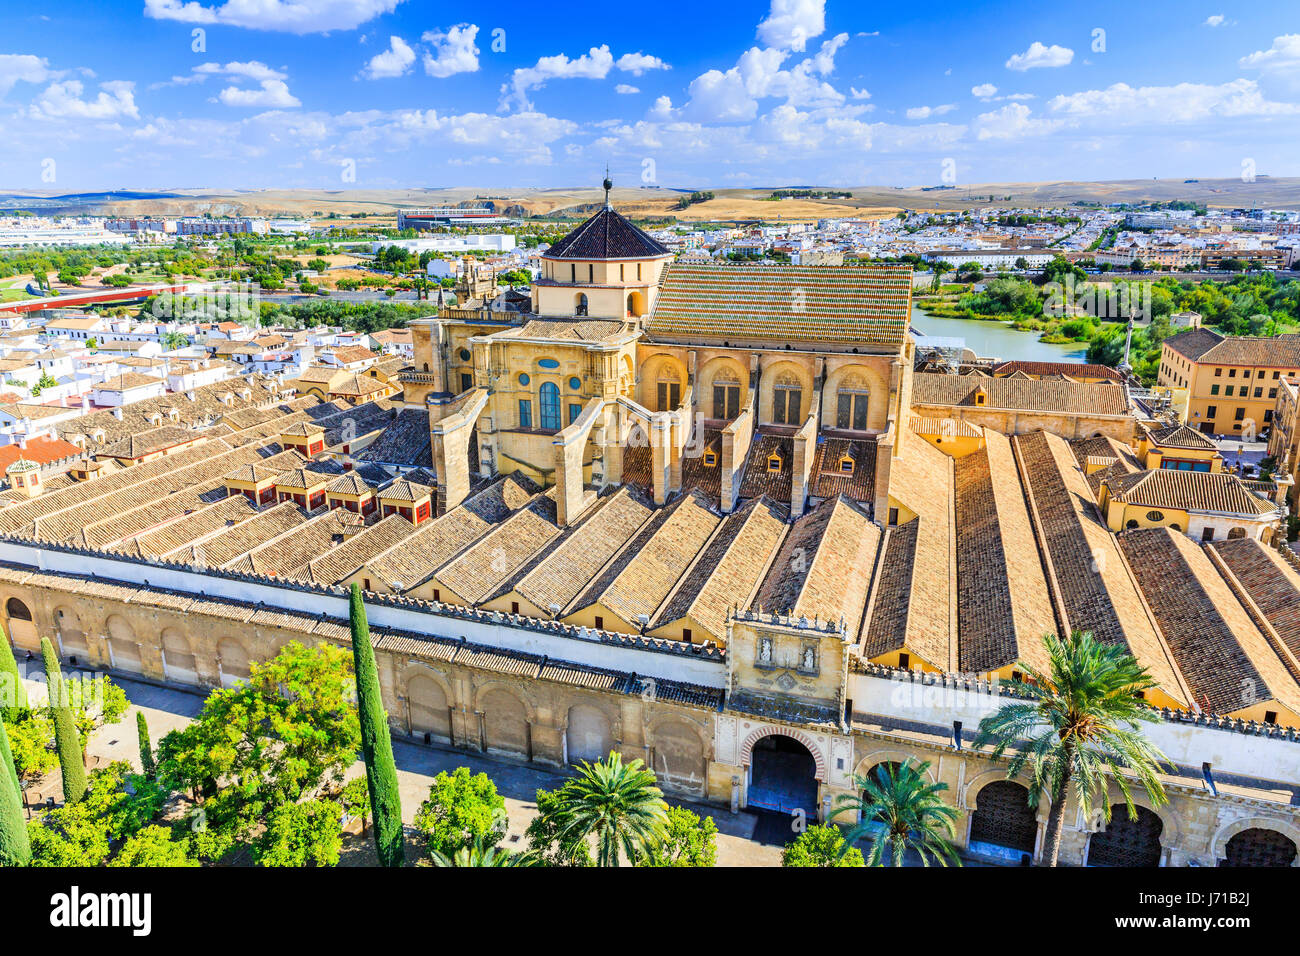 Cordoba, Spain. The Mezquita Mosque-Cathedral. - Stock Image